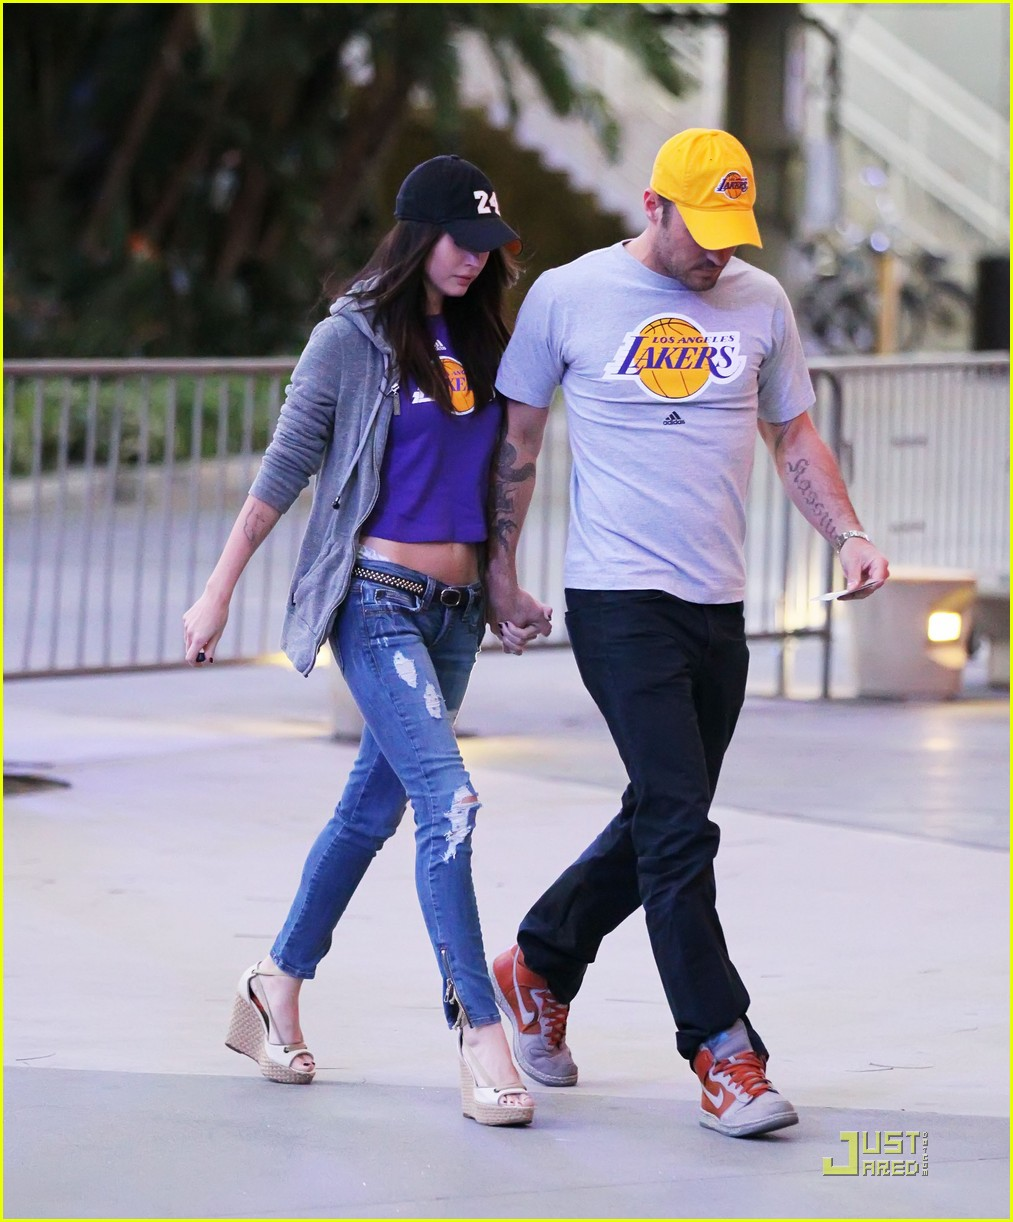 megan fox brian austin green lakers 022538599